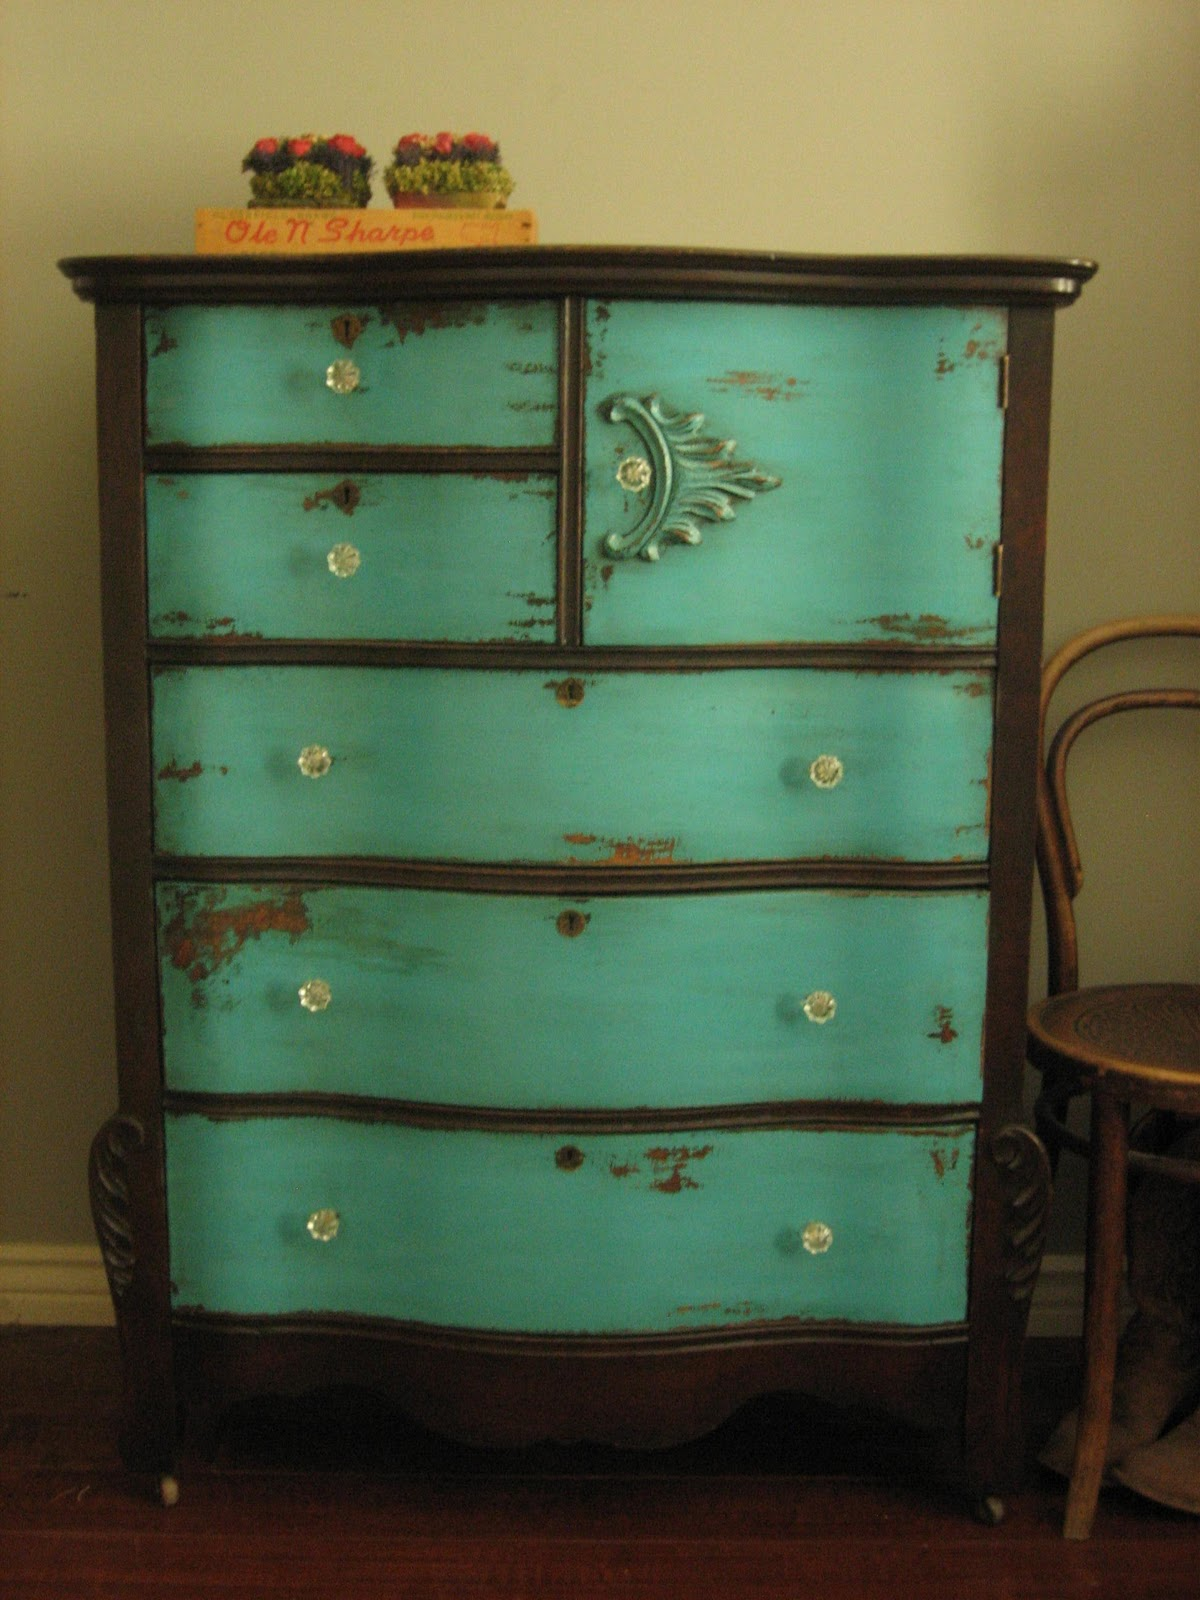 Uncategorized Turquoise Shabby Chic Furniture european paint finishes sundance dresser euro furniture anthropologie western turquoise teal chippy distressed chest of drawers antique vintage shabby chic french country